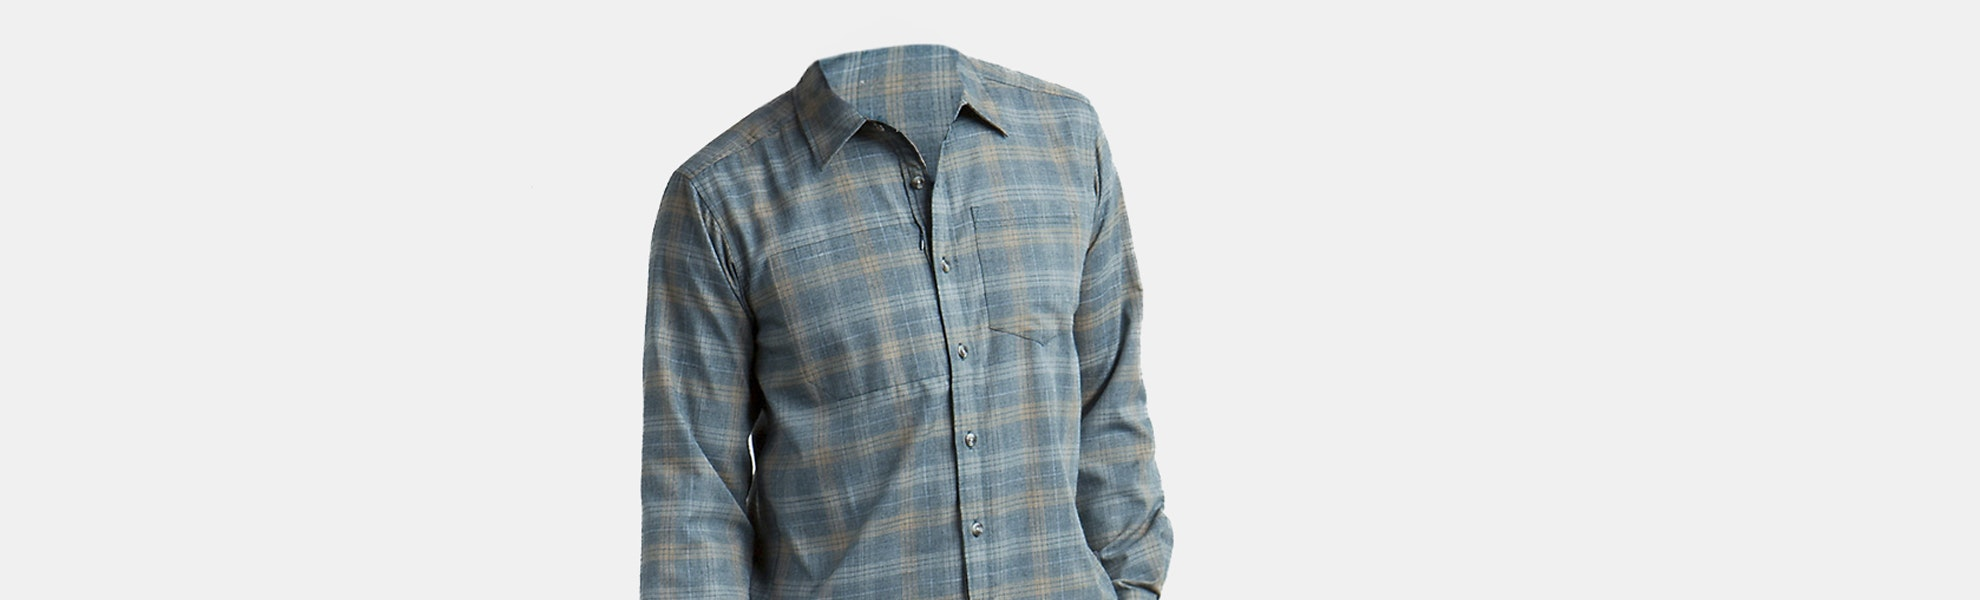 ExOfficio Men's Okanagan Long-Sleeve Flannel Shirt